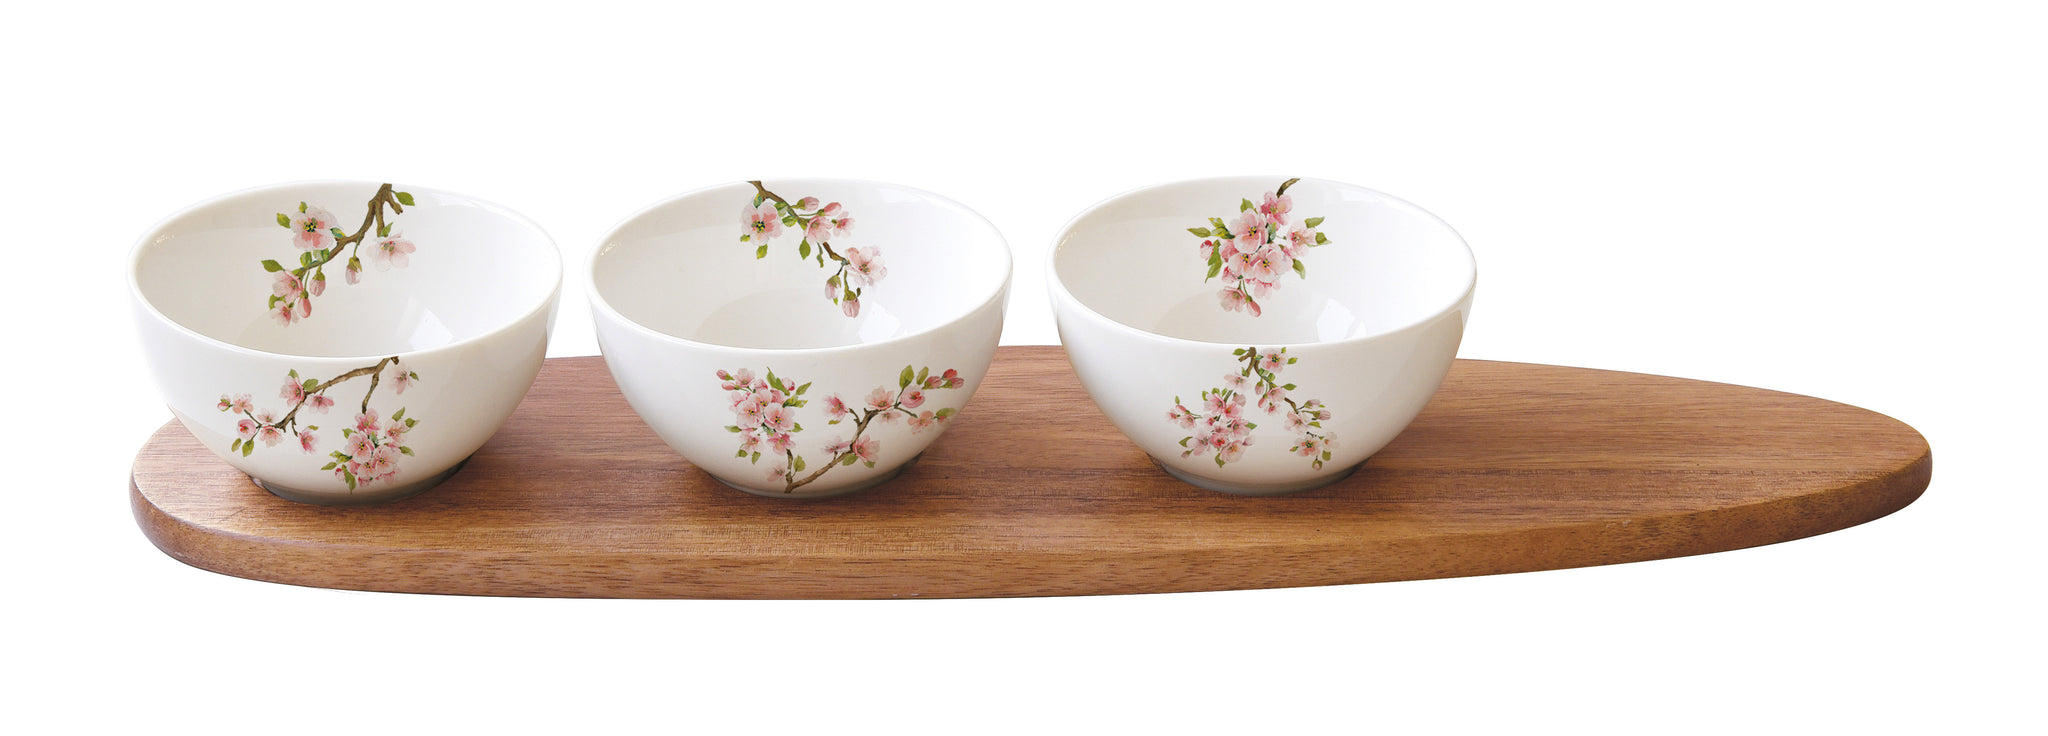 An appetizer set with 3 bowls